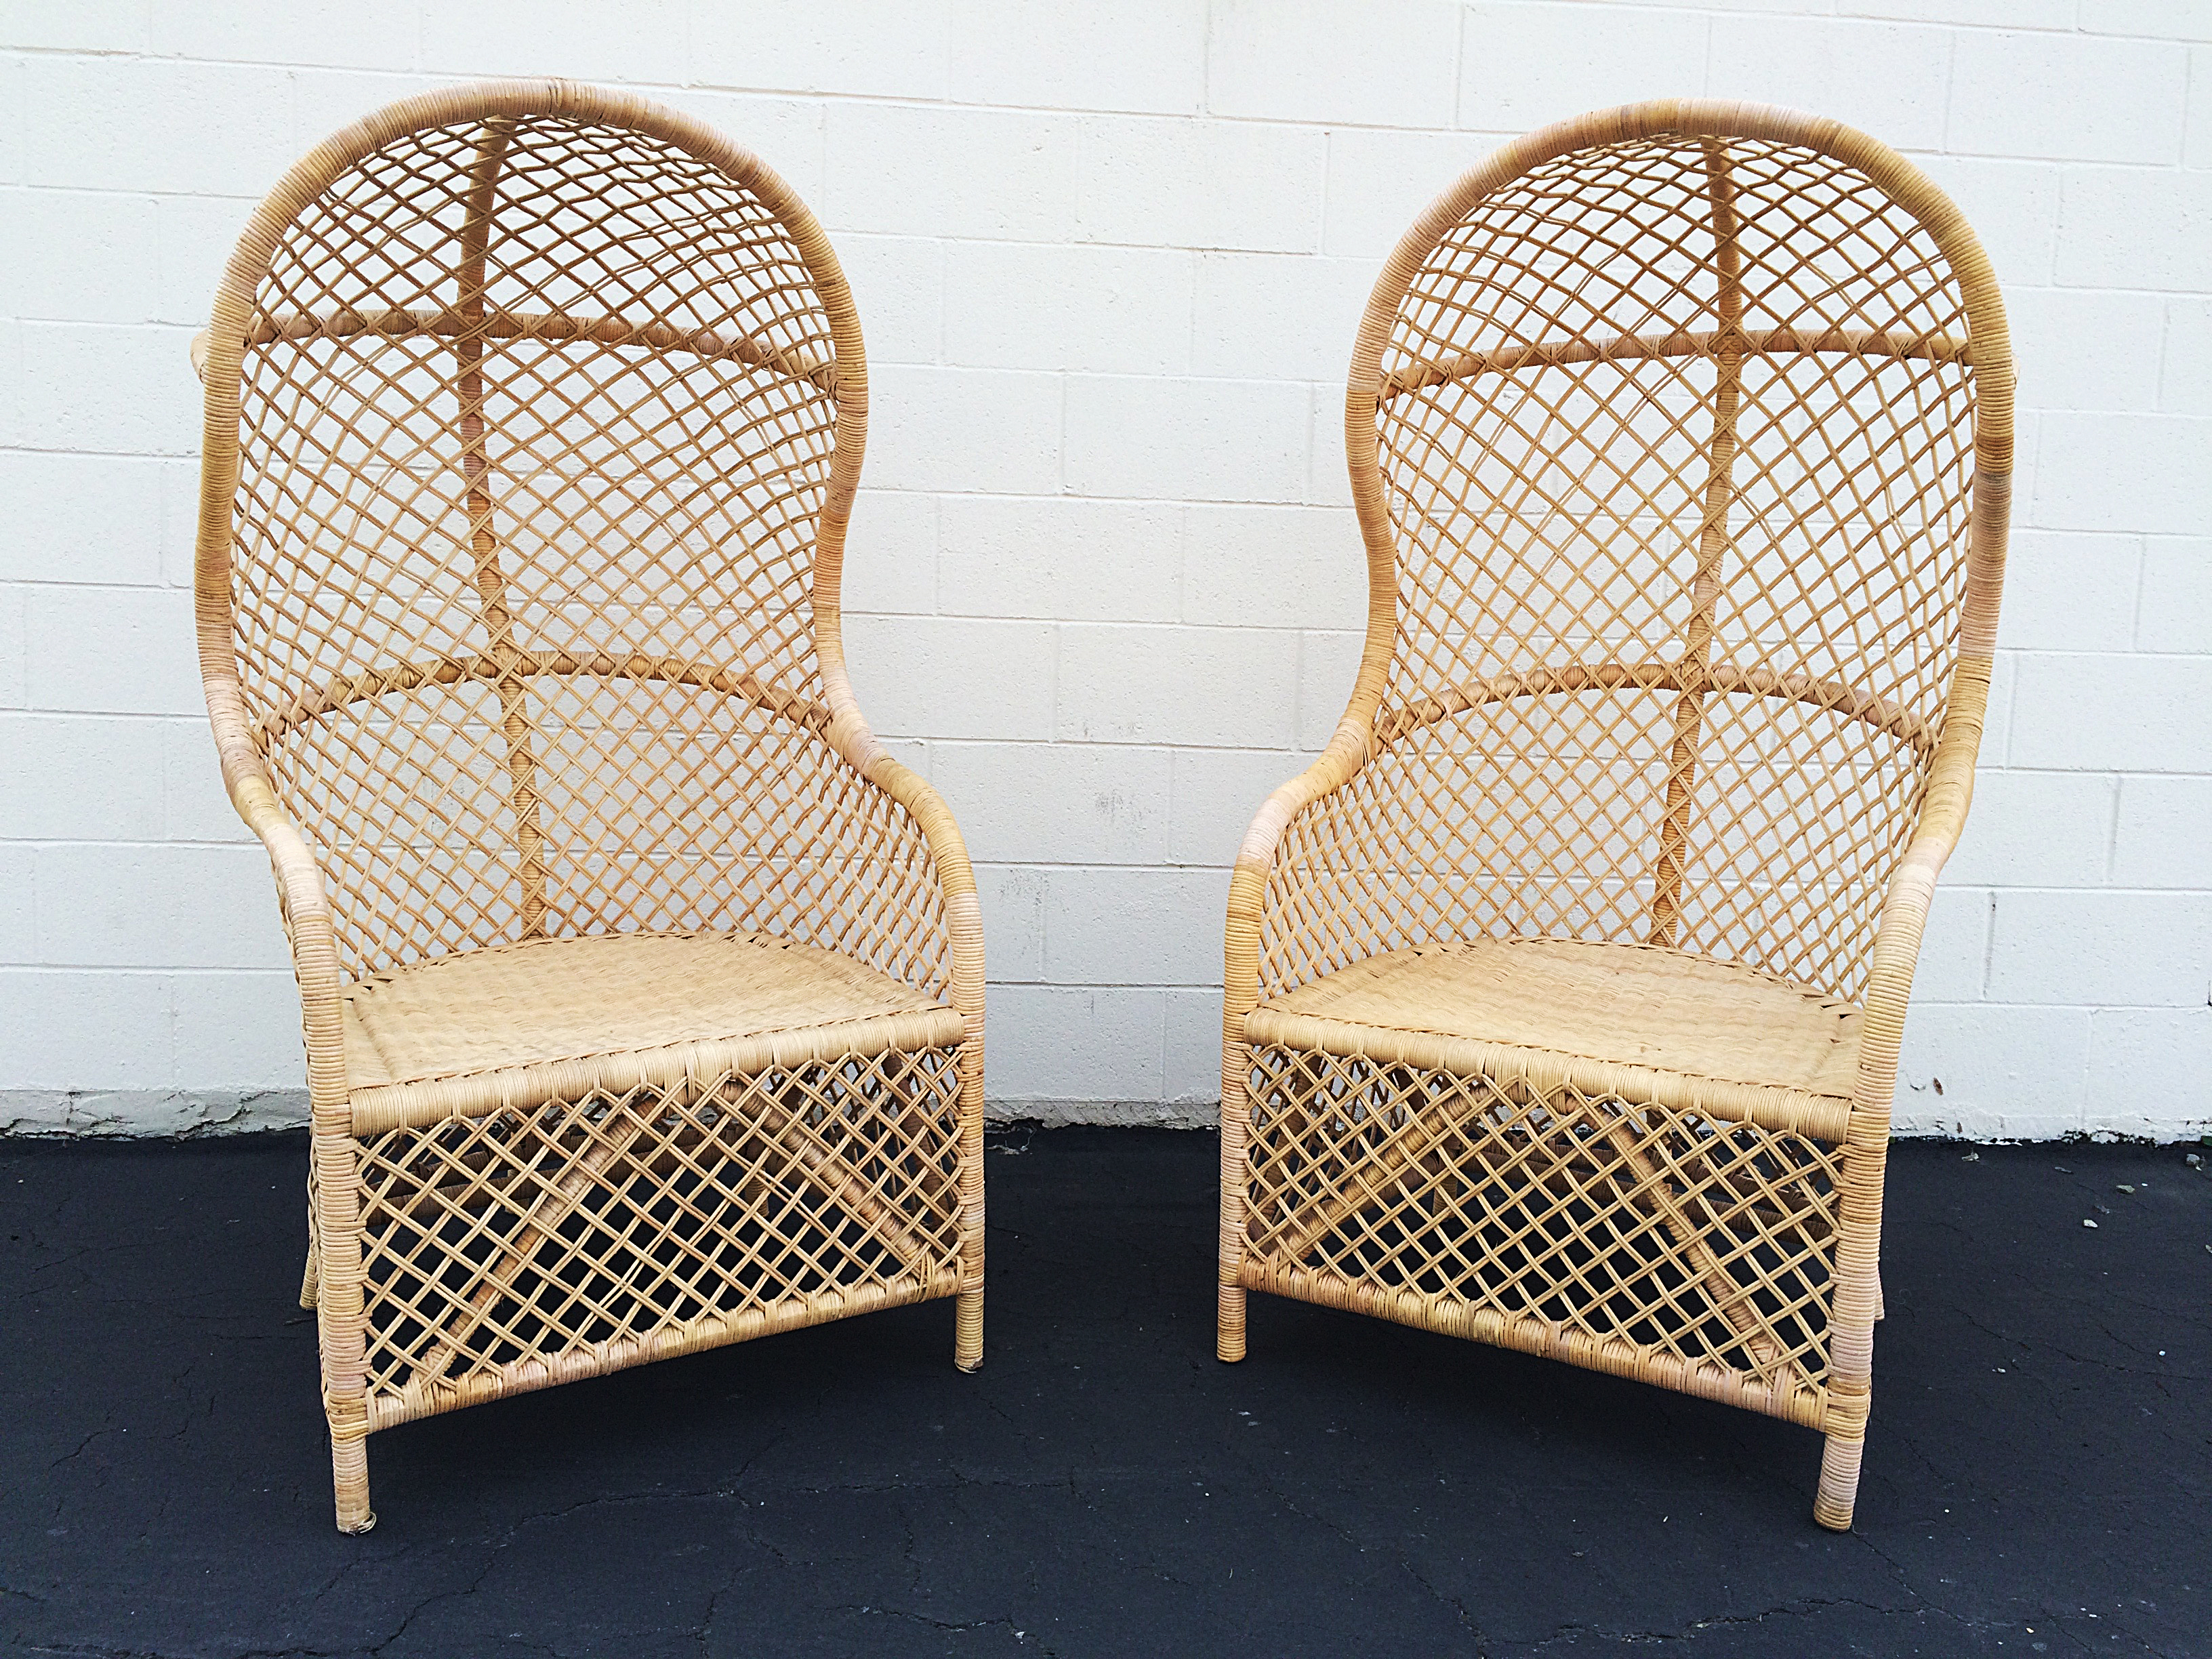 Wonderful Rattan Canopy Chairs   A Pair   Image 2 Of 5